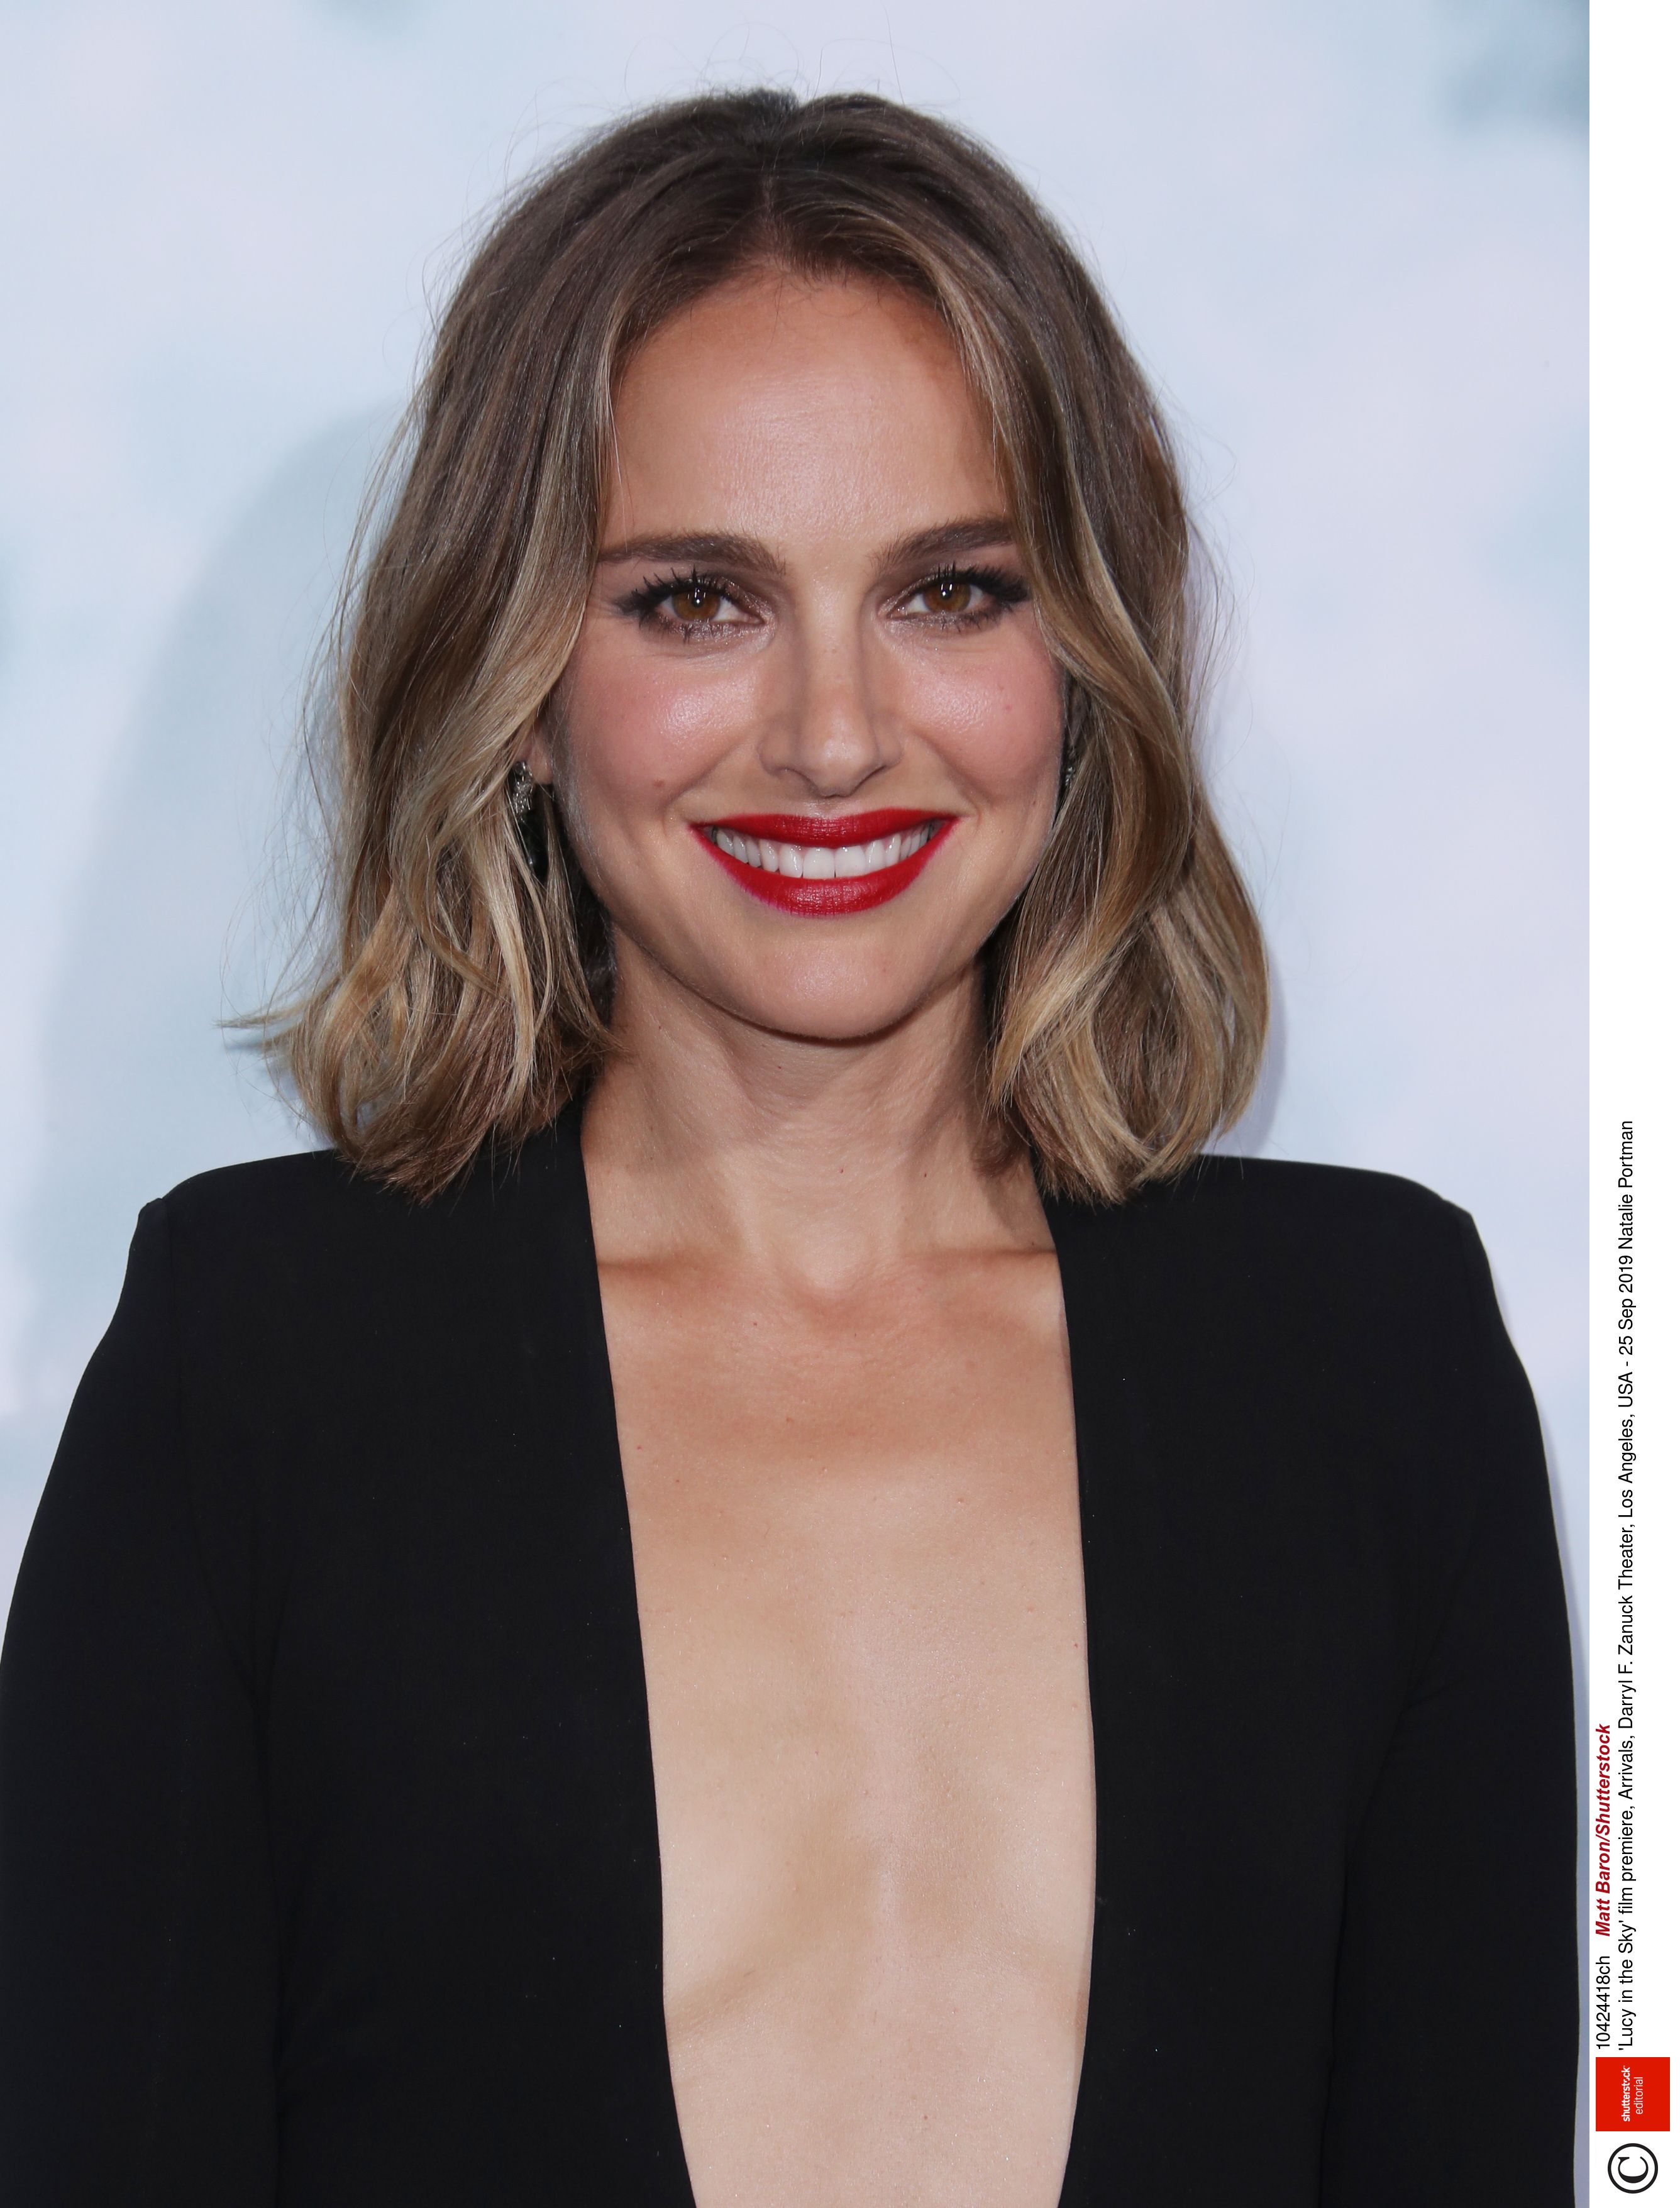 Bob hairstyles for 2019 , 62+ short haircut trends to try now